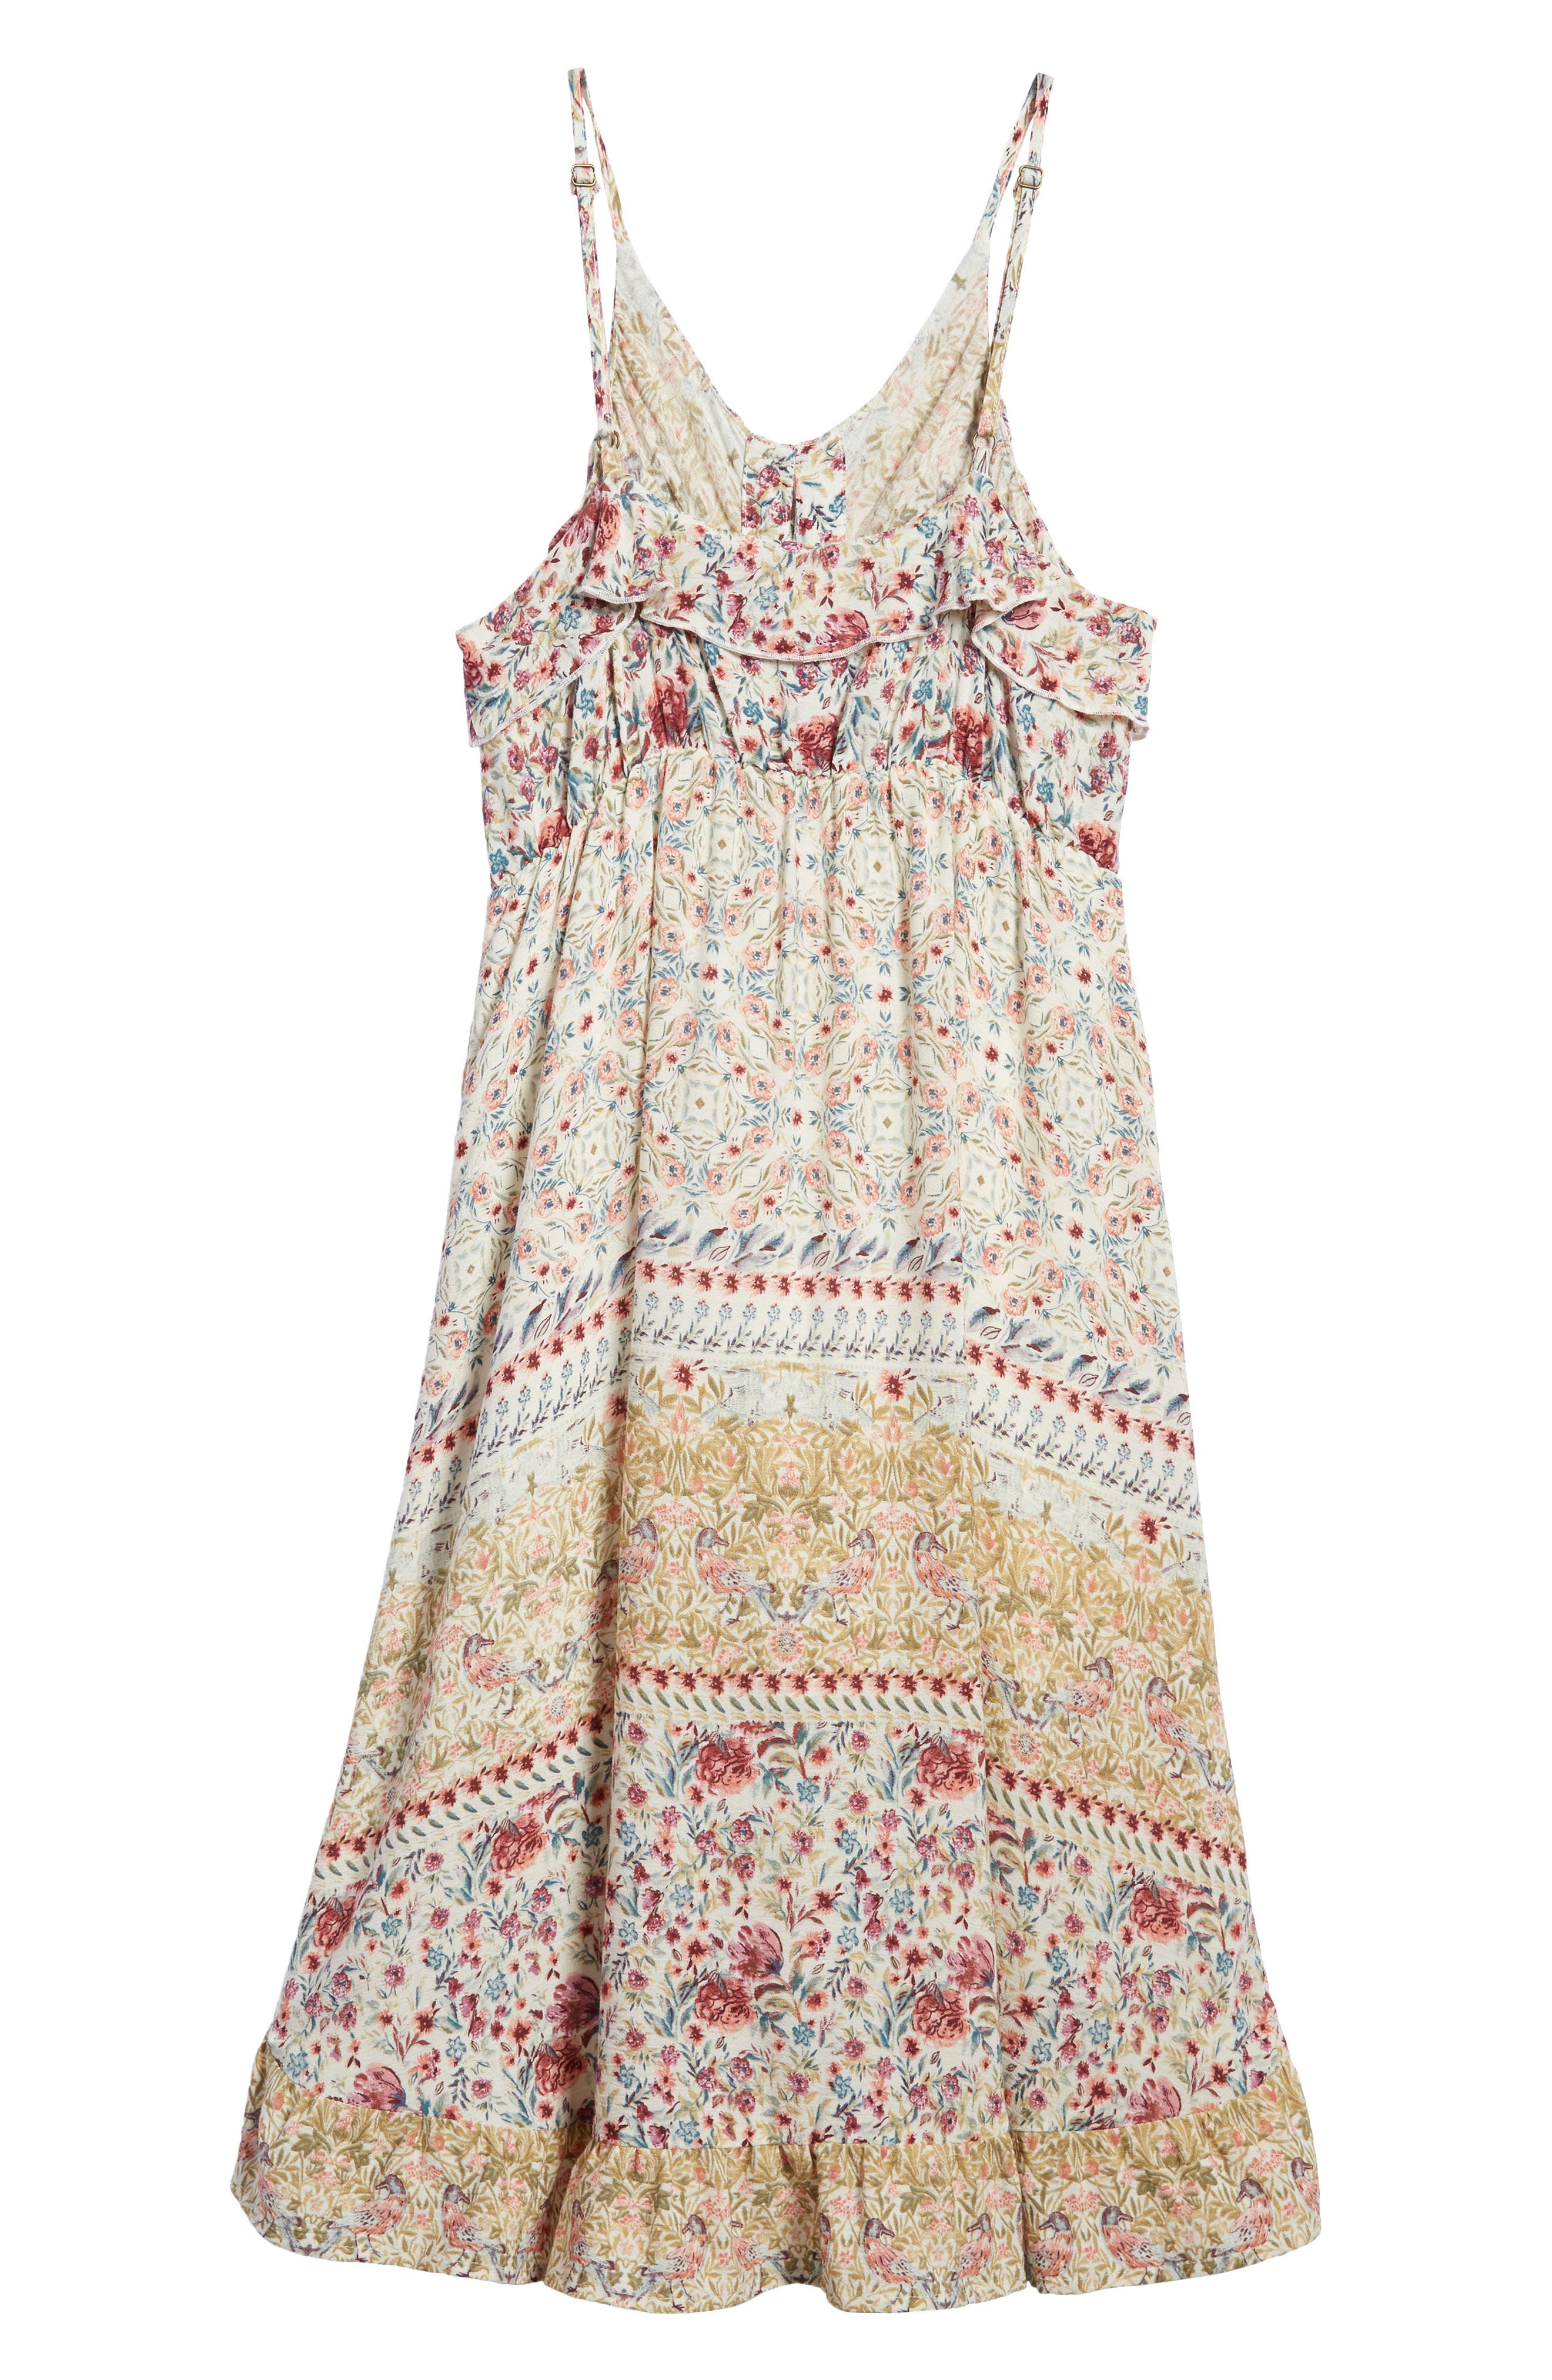 Brooklyn Mixed Print Sundress,                             Alternate thumbnail 2, color,                             Naked - Wwh